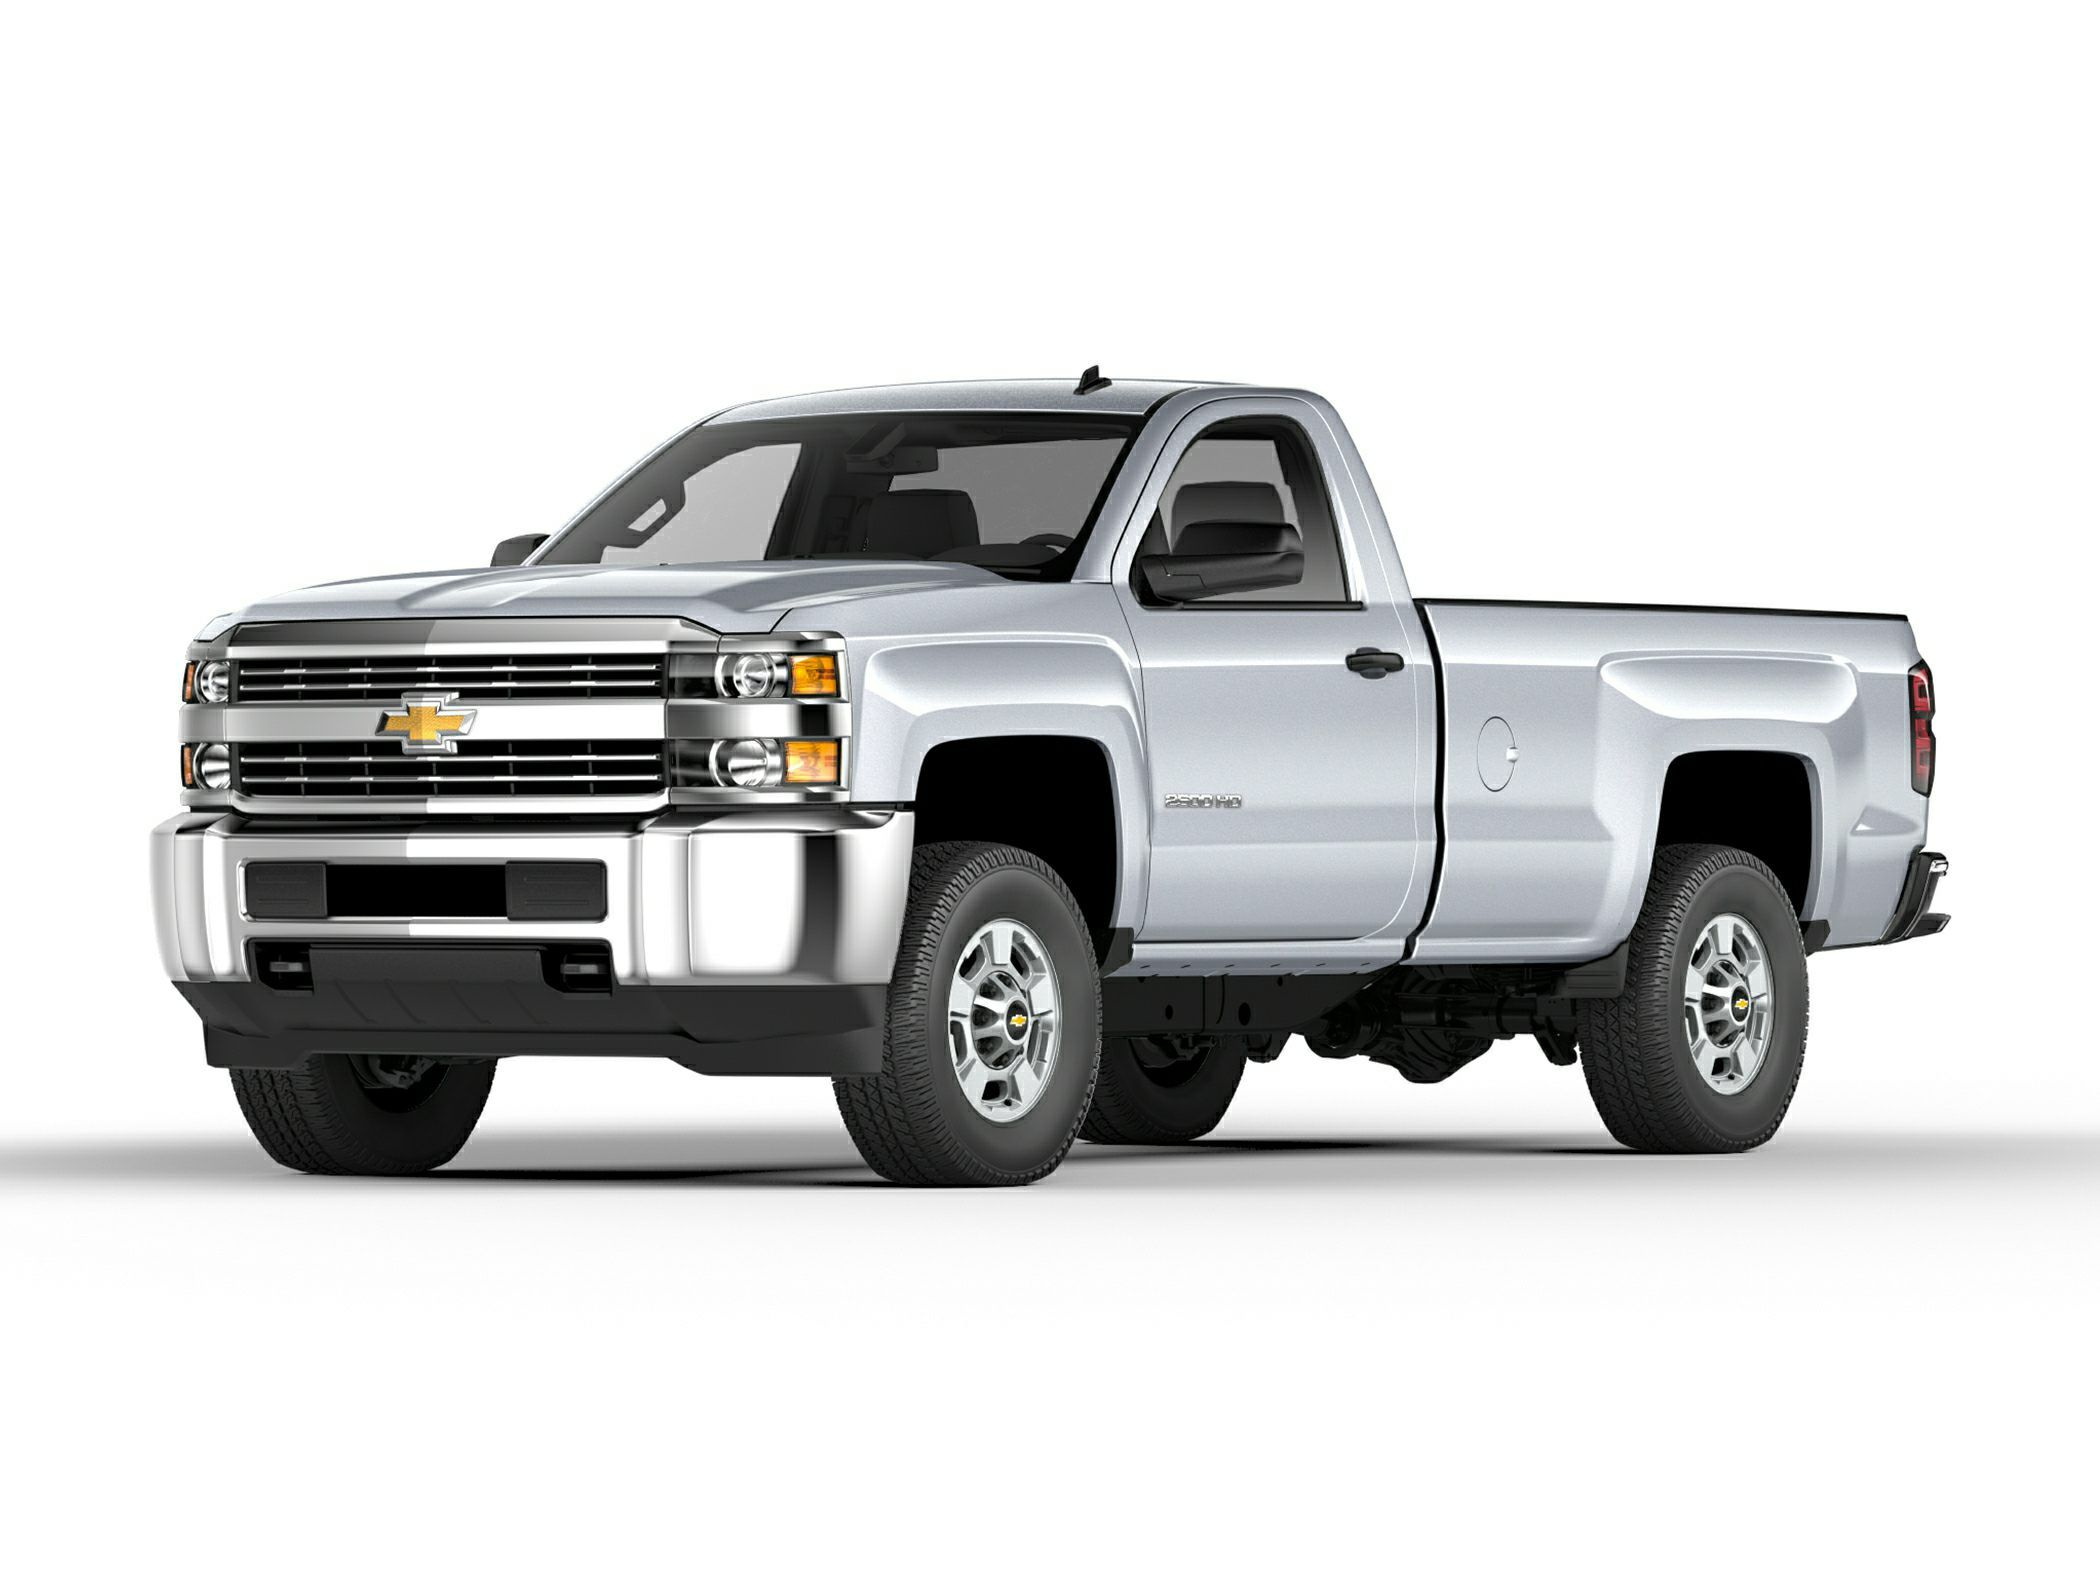 Chevrolet Silverado Hd Was Completely Re Engineered For 2011 So